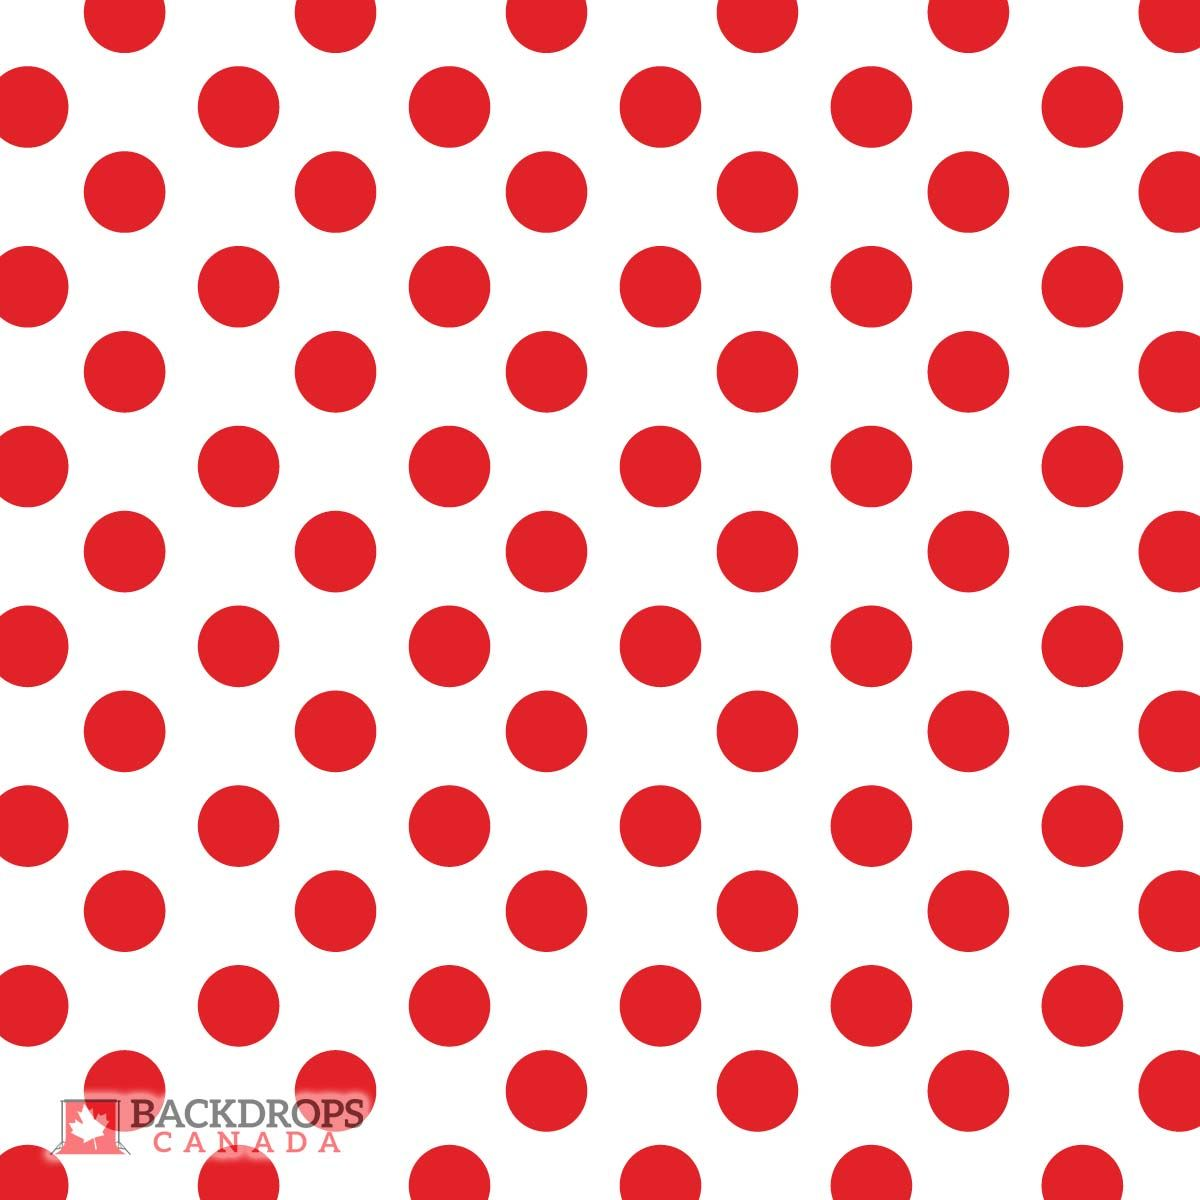 Abstract Background Of Red Dots On Black Background Red Dots Abstract Backgrounds Abstract